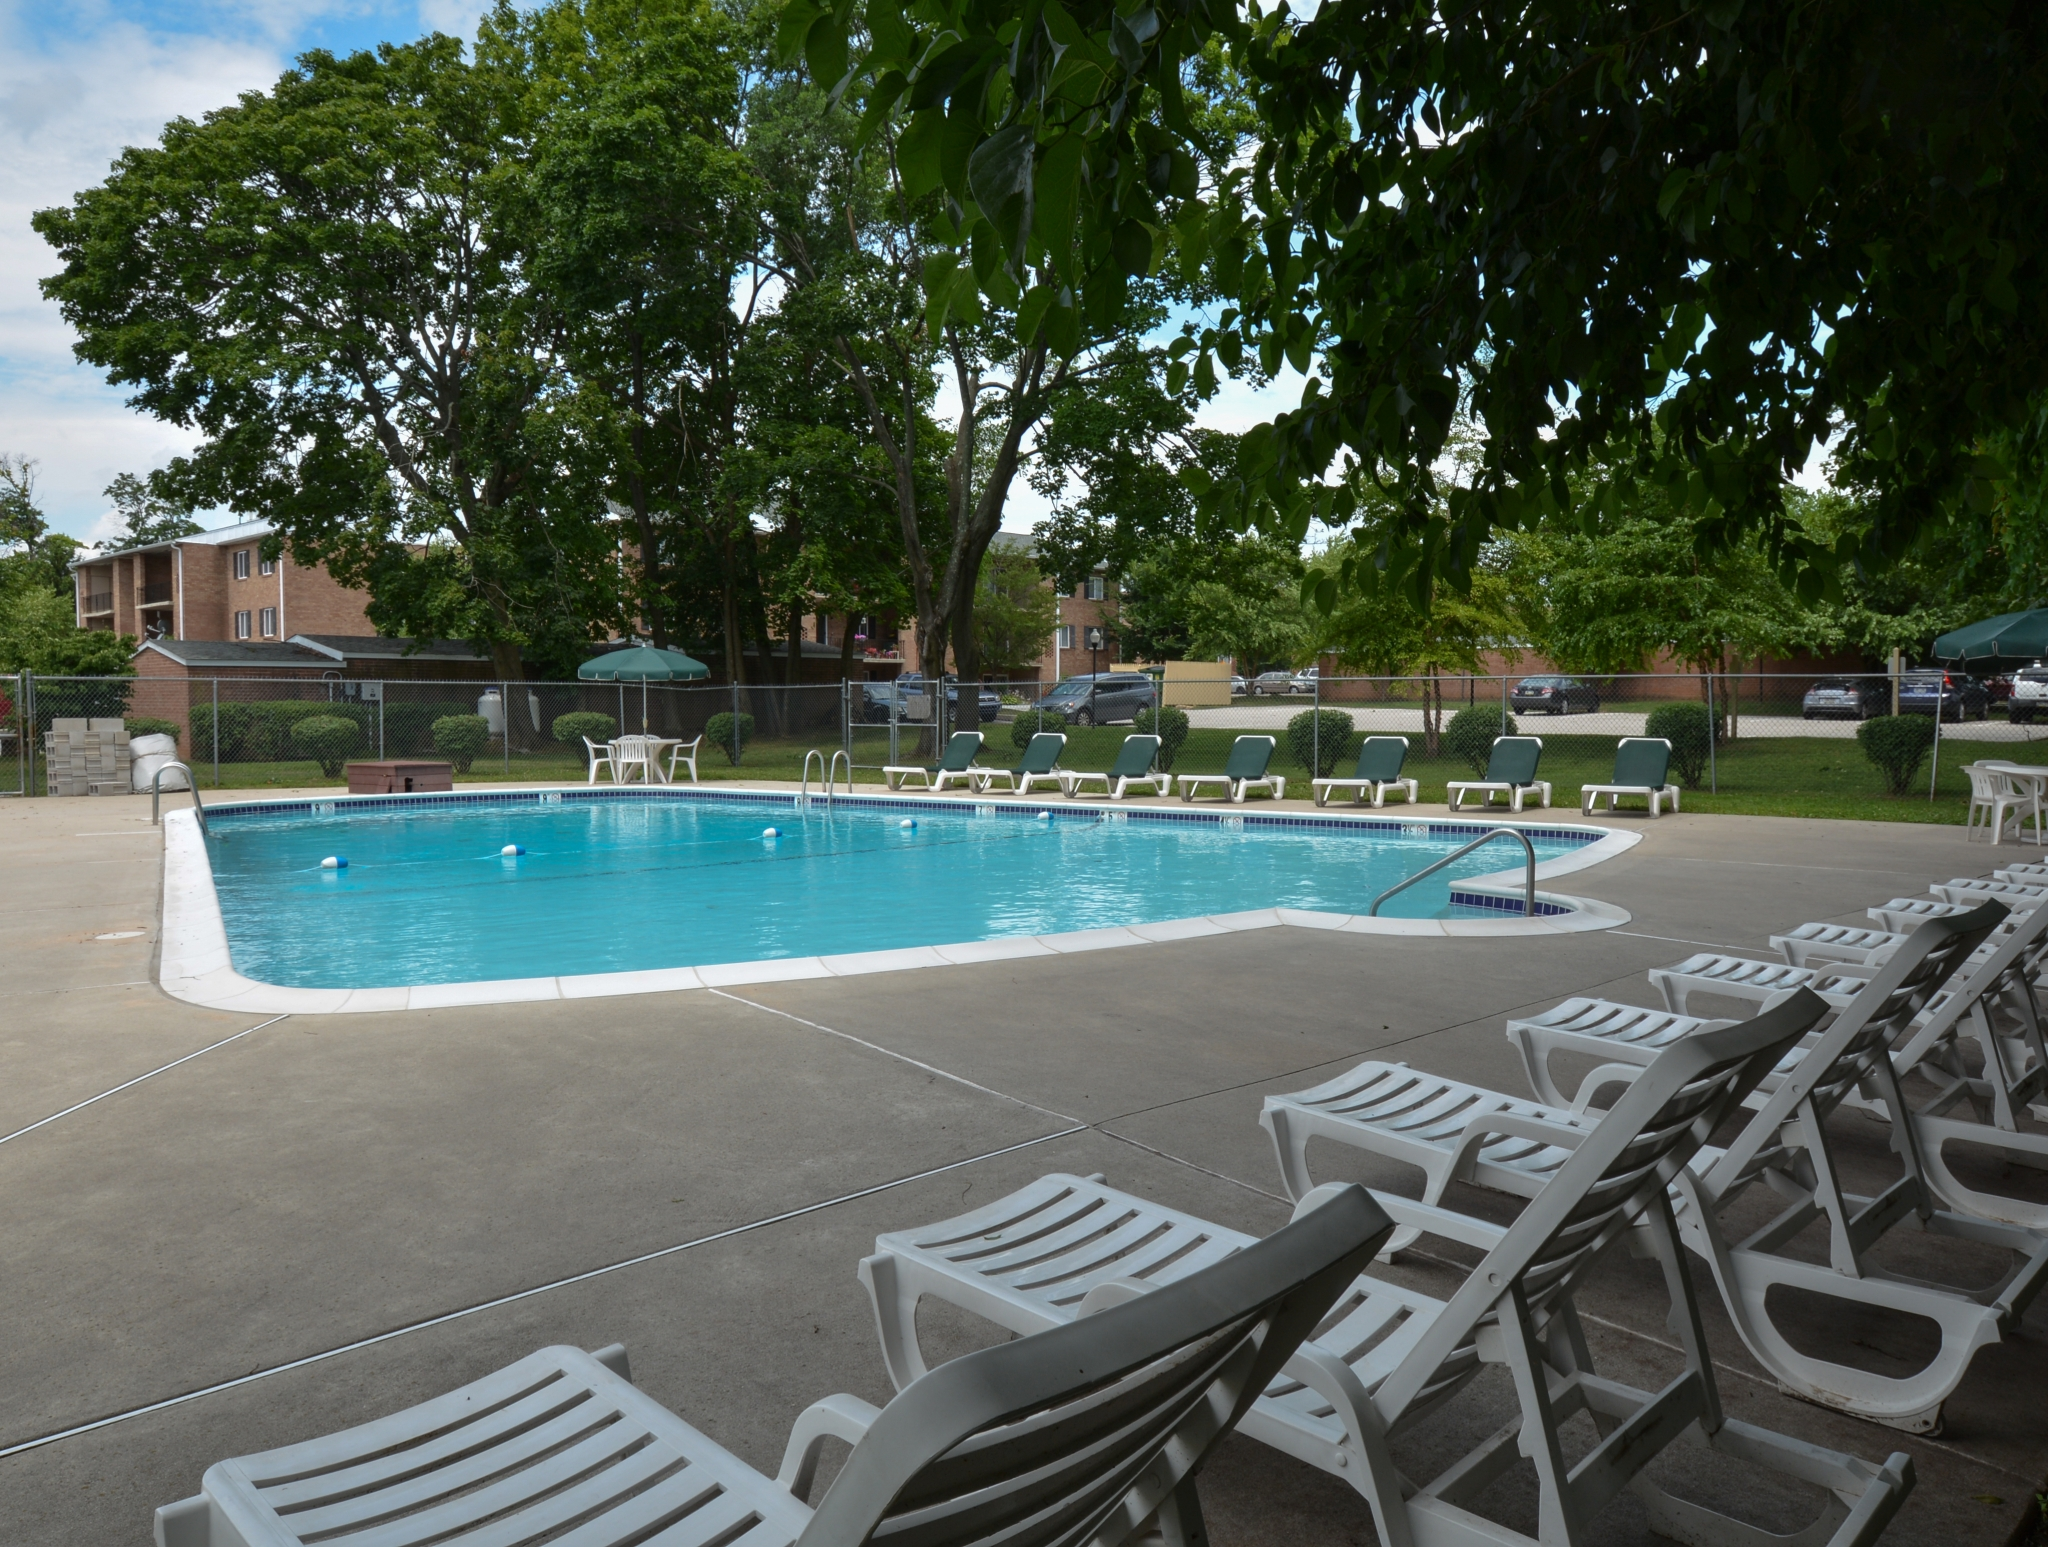 Paoli Place Swimming Pool with Chairs | Paoli PA Apartments